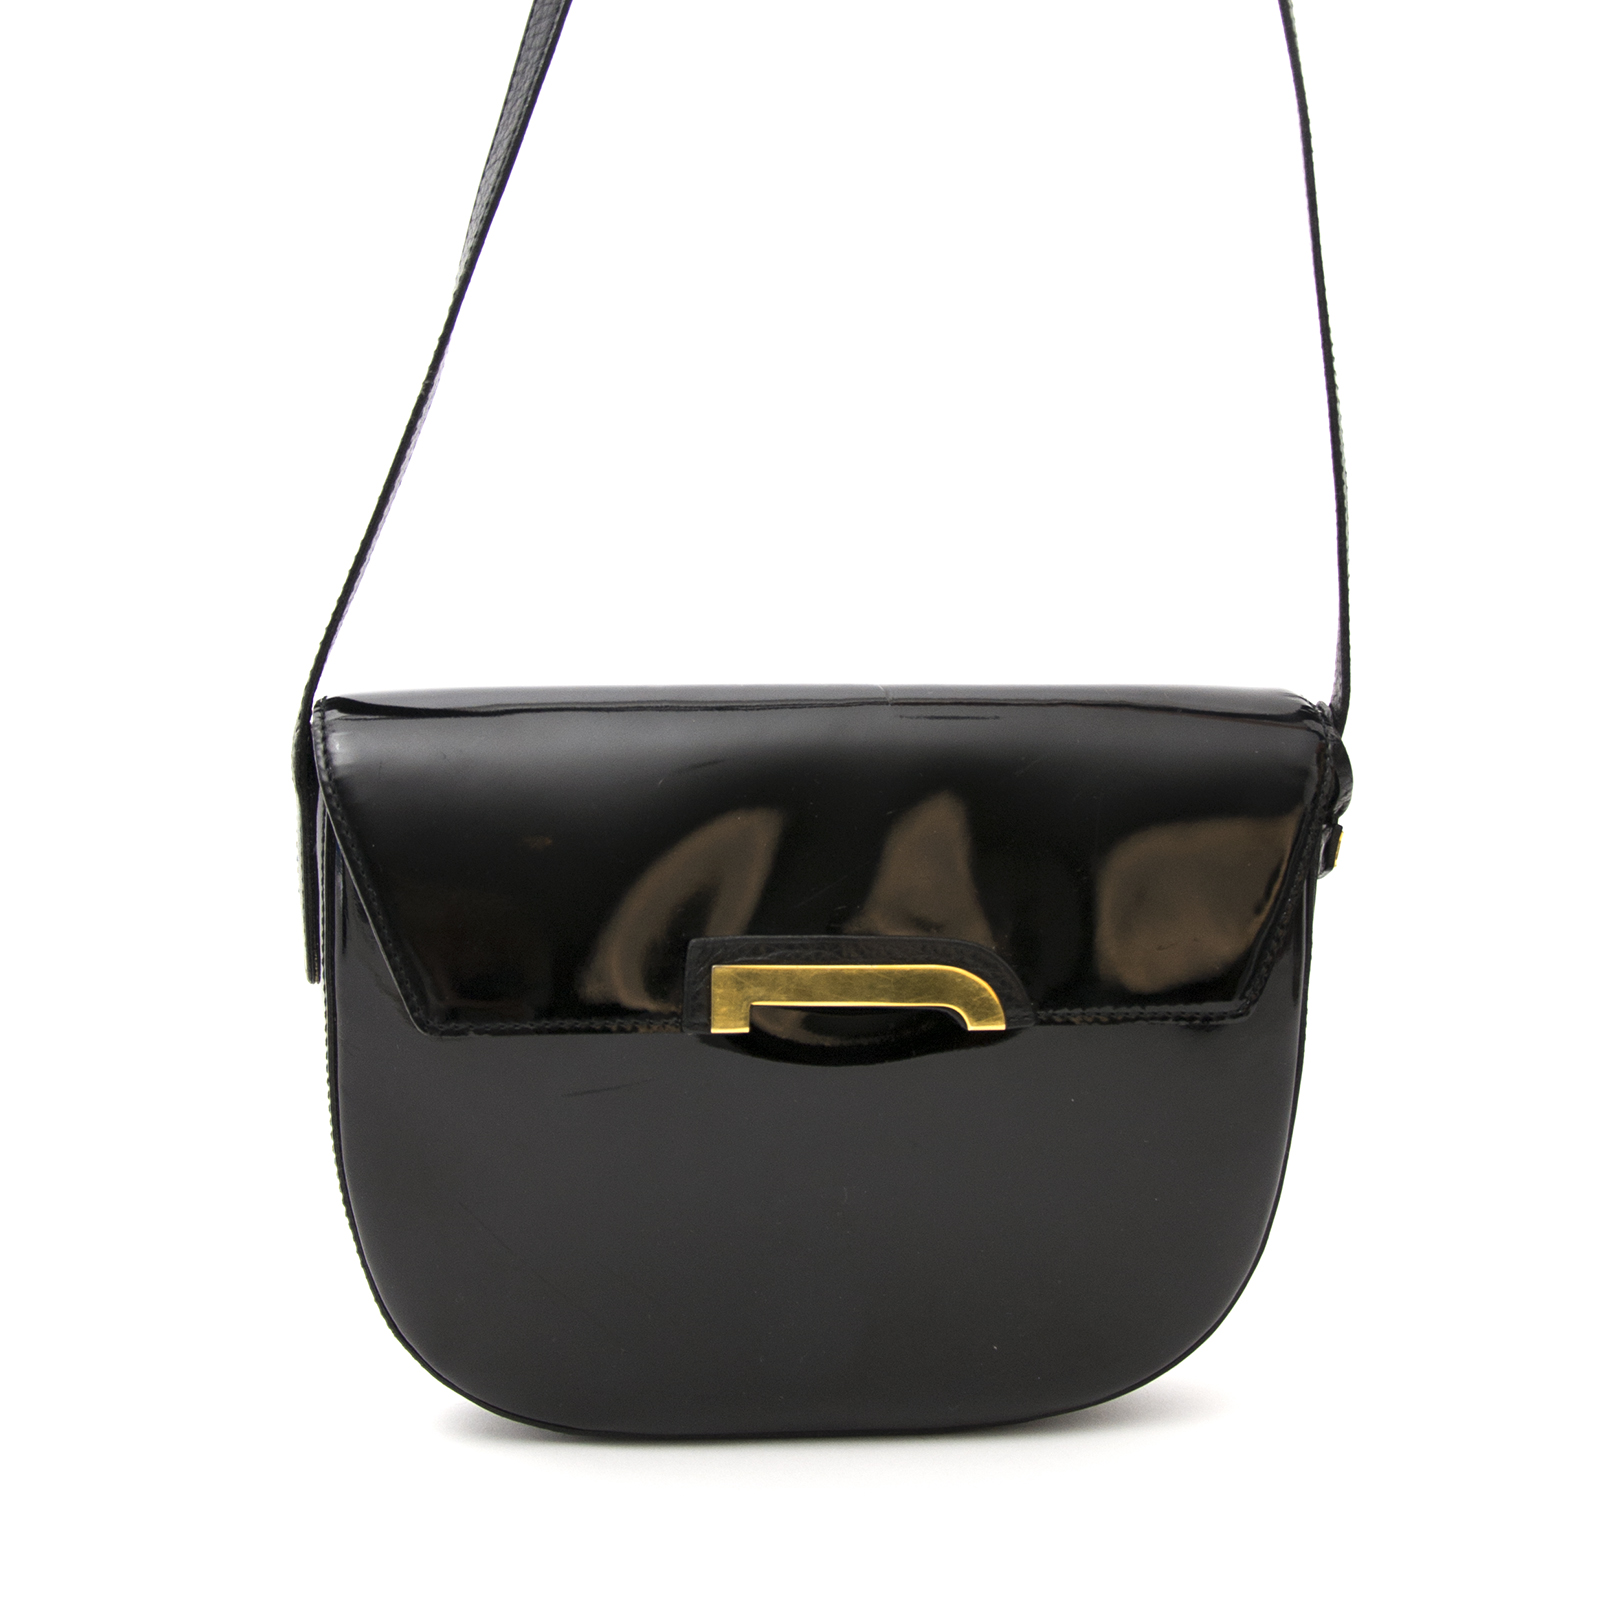 9ed44d3720af ... Achetez le Delvaux Black Crossbody Bag Patent Leather en ligne www. labellov.com